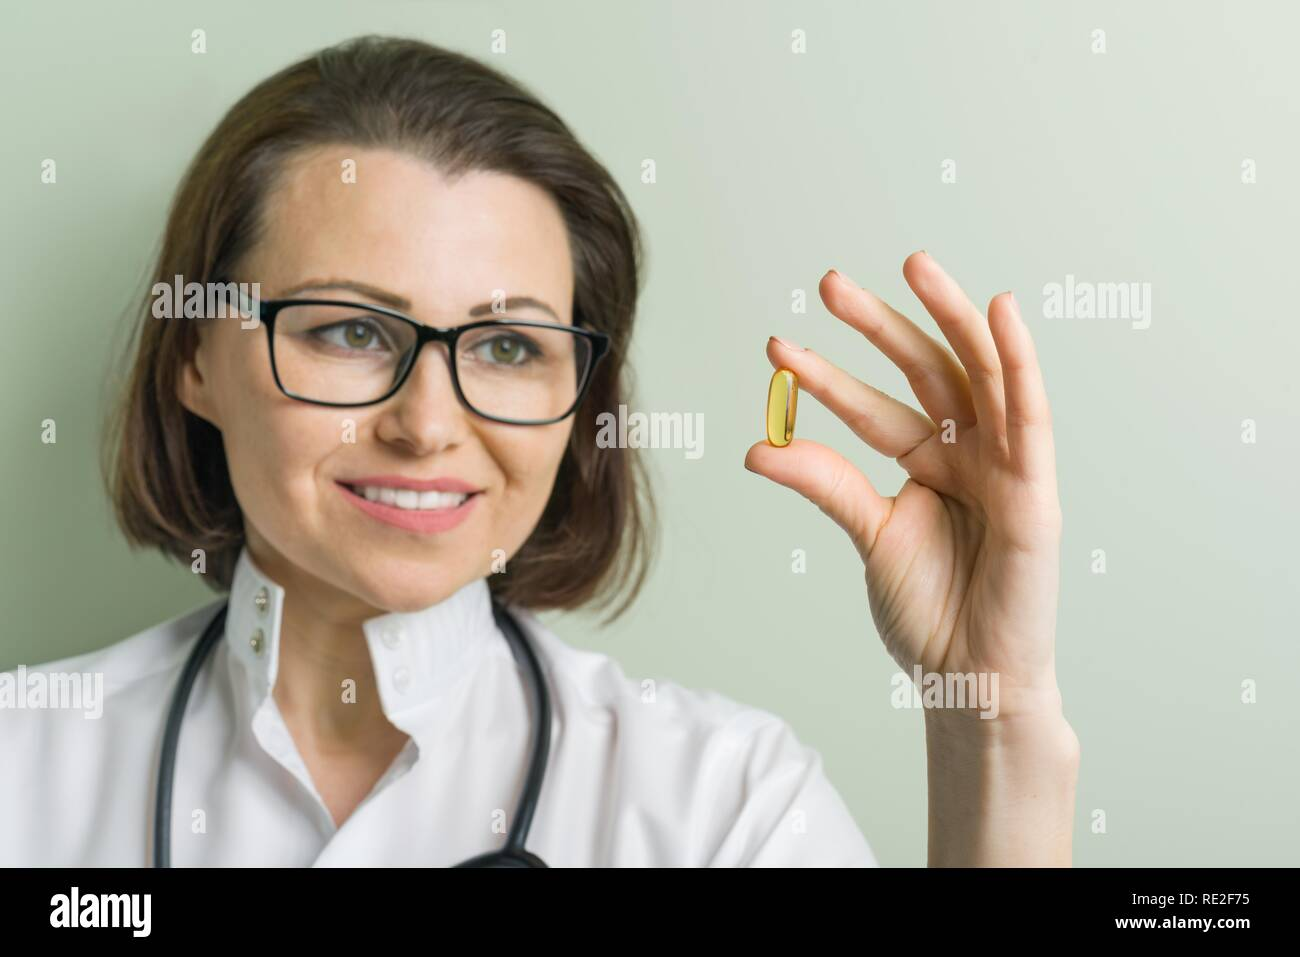 Female doctor takes vitamin capsule. Healthy lifestyle, nutritional supplements, vitamin d, e, fish oil capsules. Stock Photo